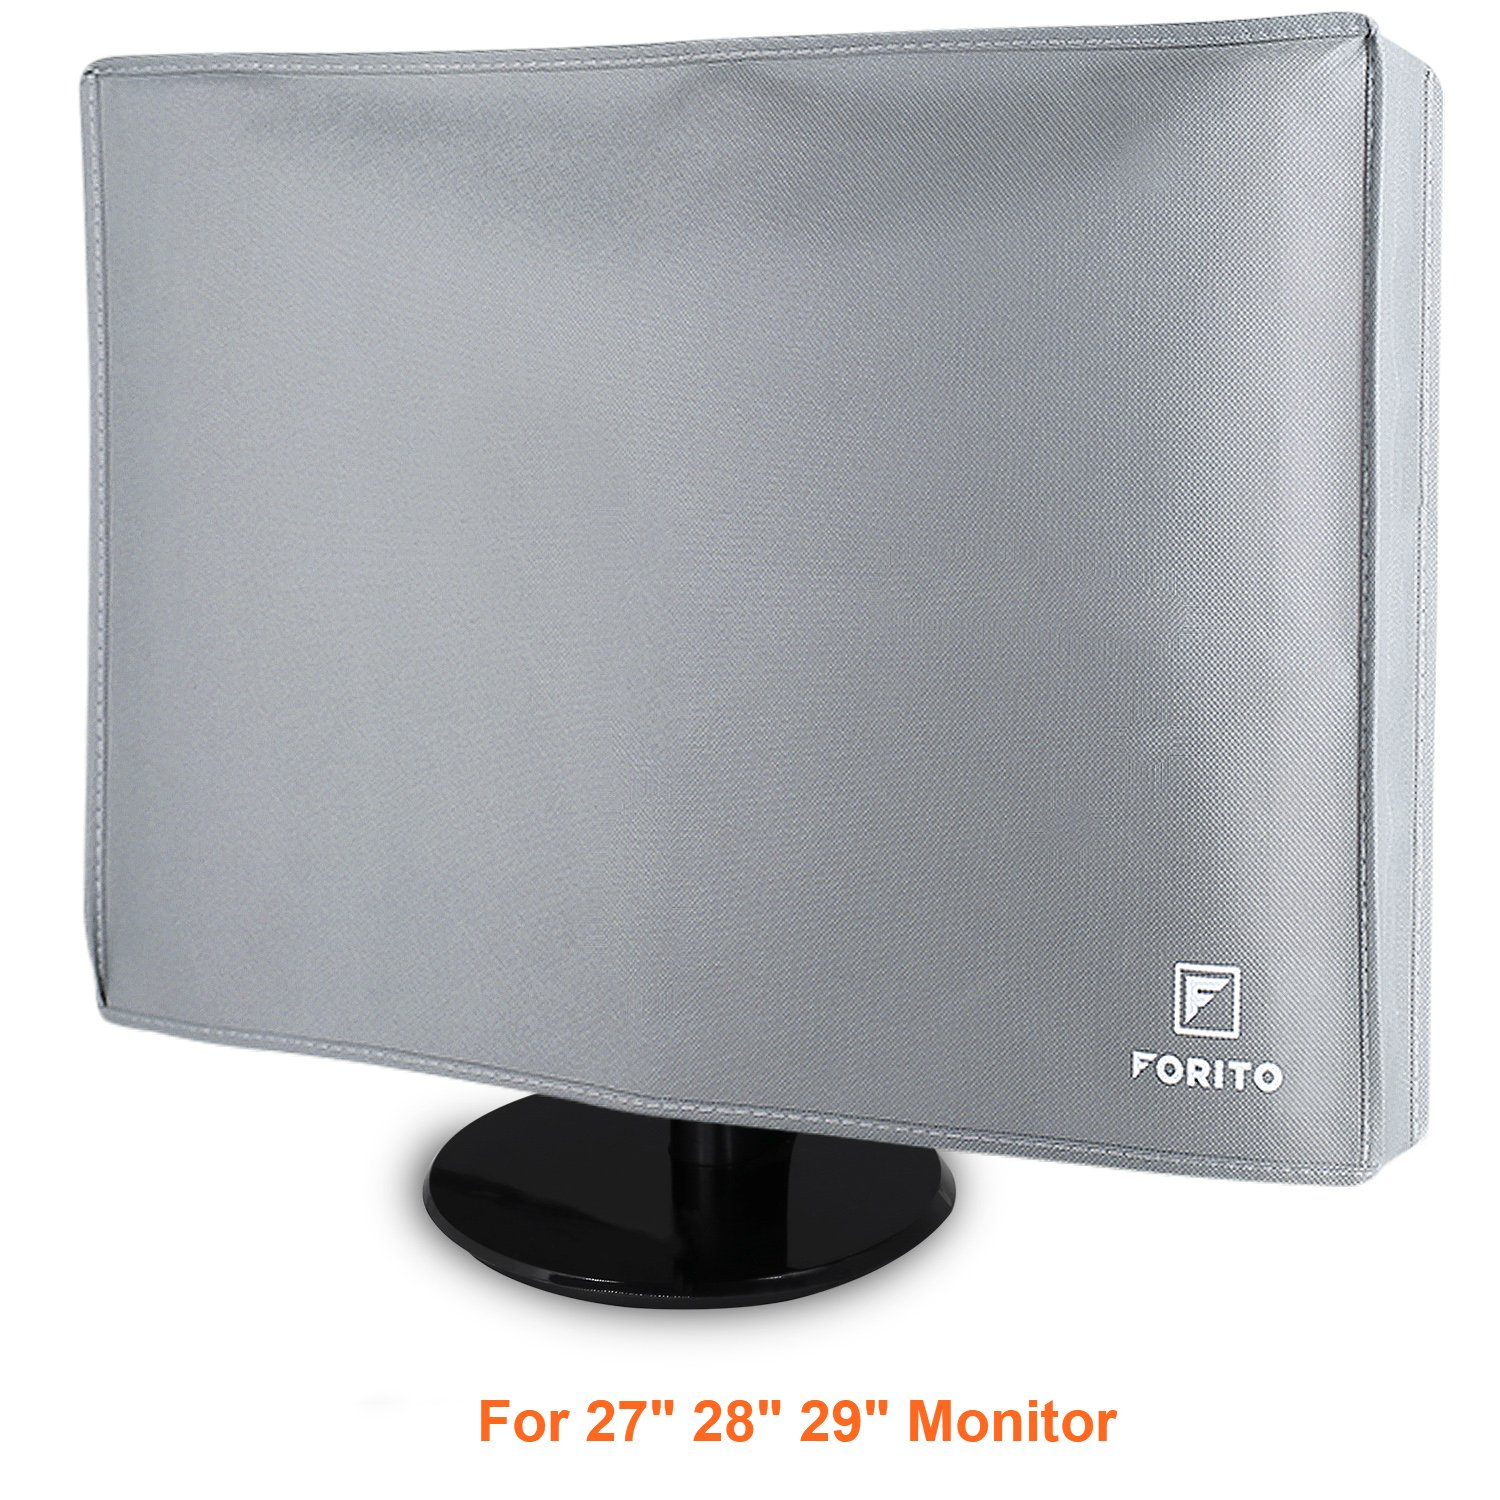 """FORITO Monitor Dust Cover Silky Smooth Nonwoven Monitor Dust Cover for 27"""" 28"""" 29'' LED LCD Screens Flat Panel HD Display"""